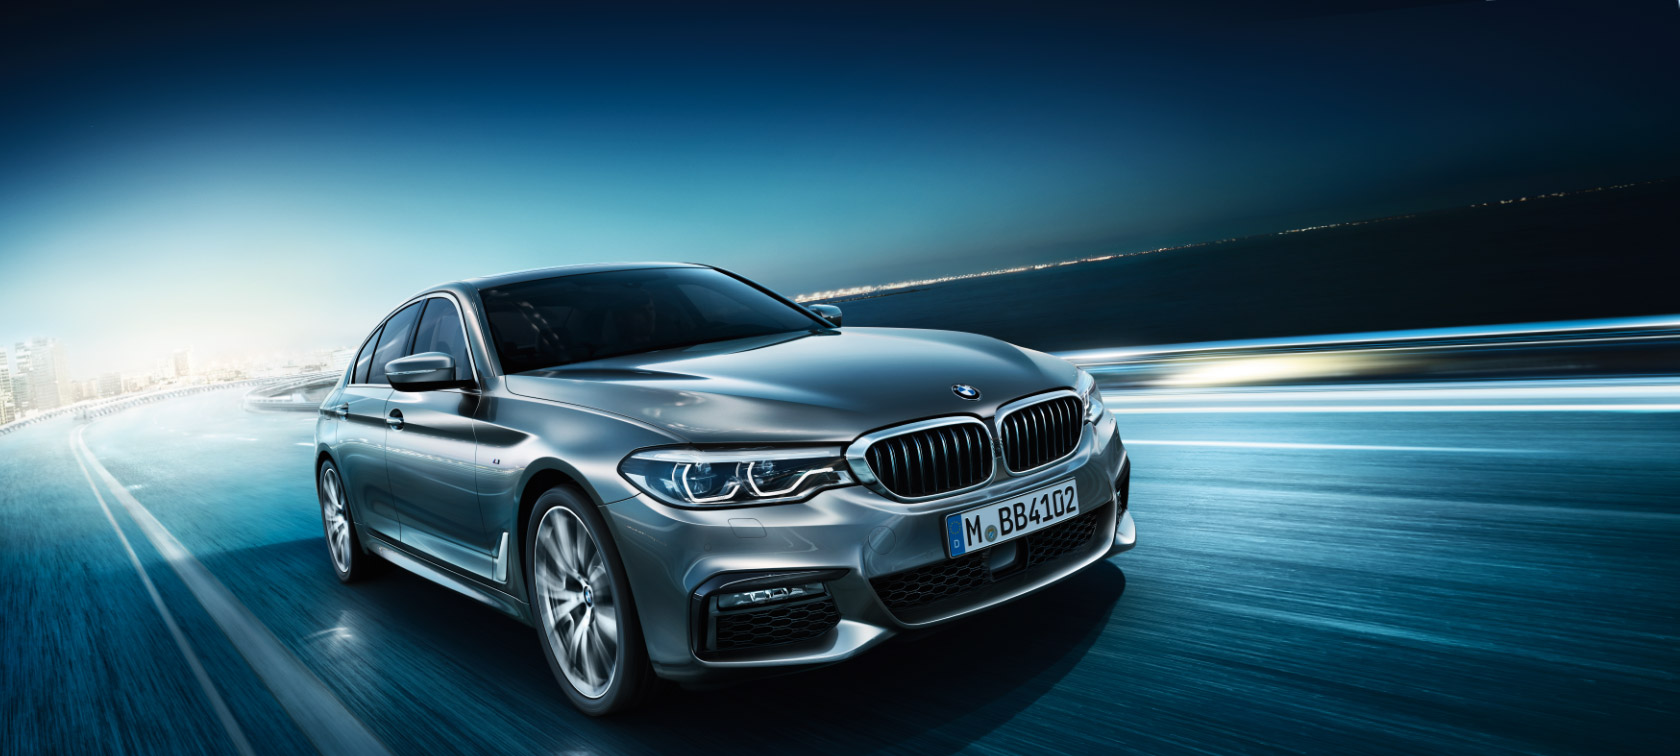 The new BMW 5 Series Sedan